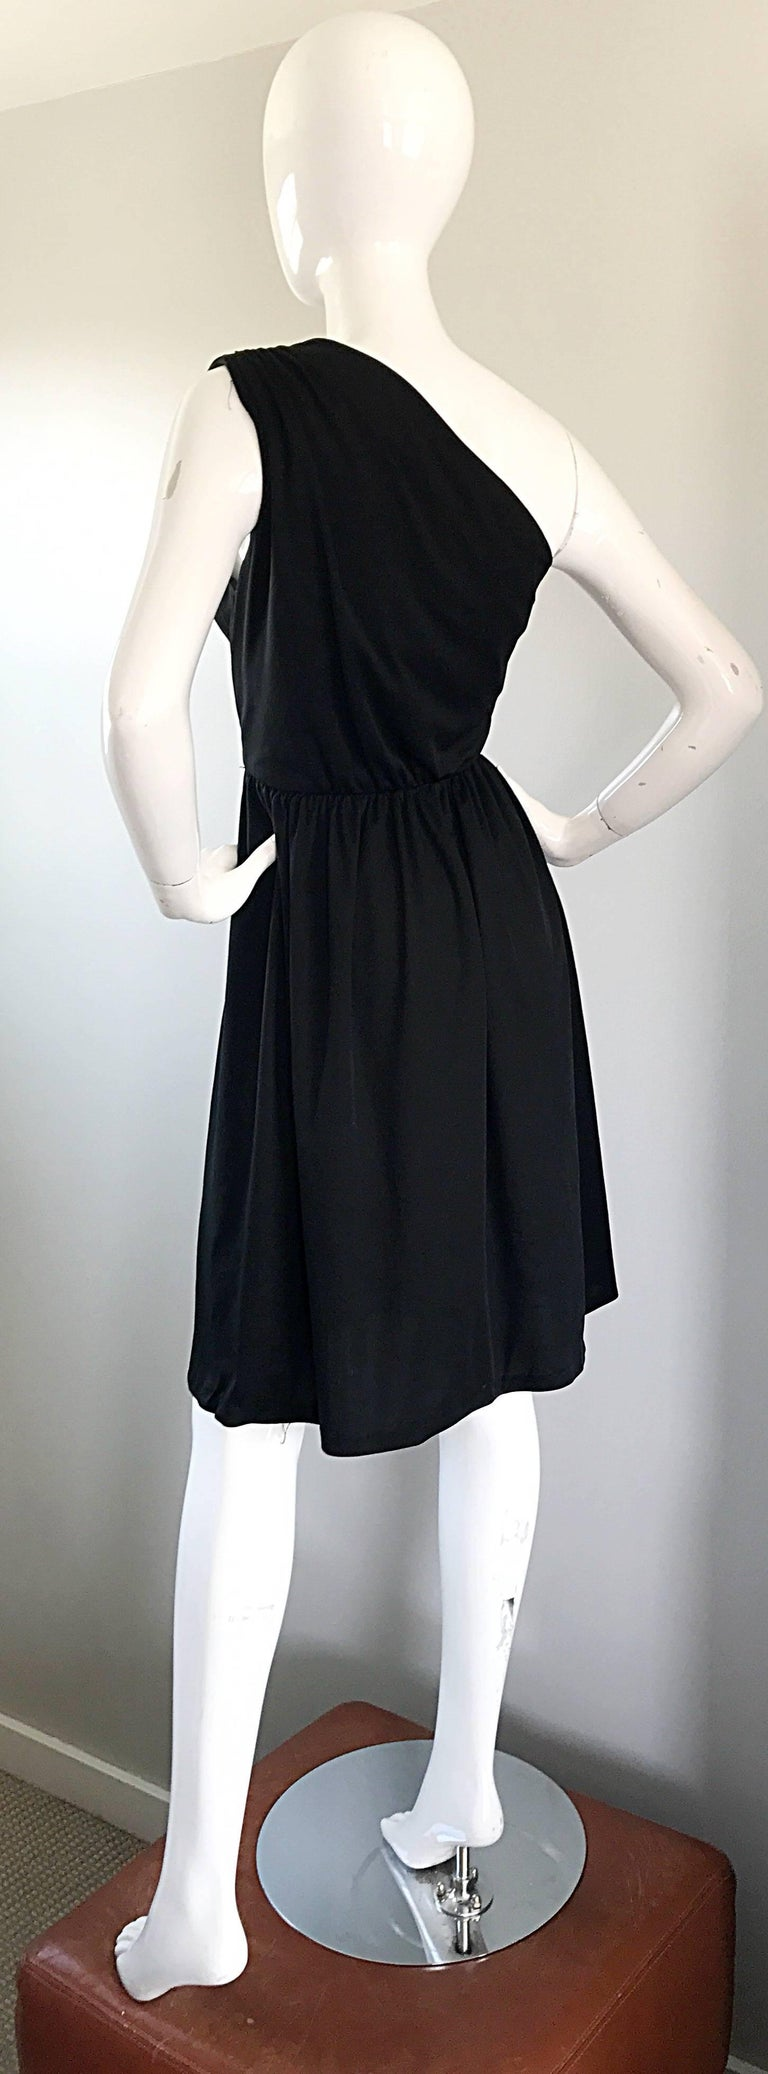 1970s Anthony Muto for Joseph Magnin Black Jersey One Shoulder 70s Grecian Dress For Sale 4